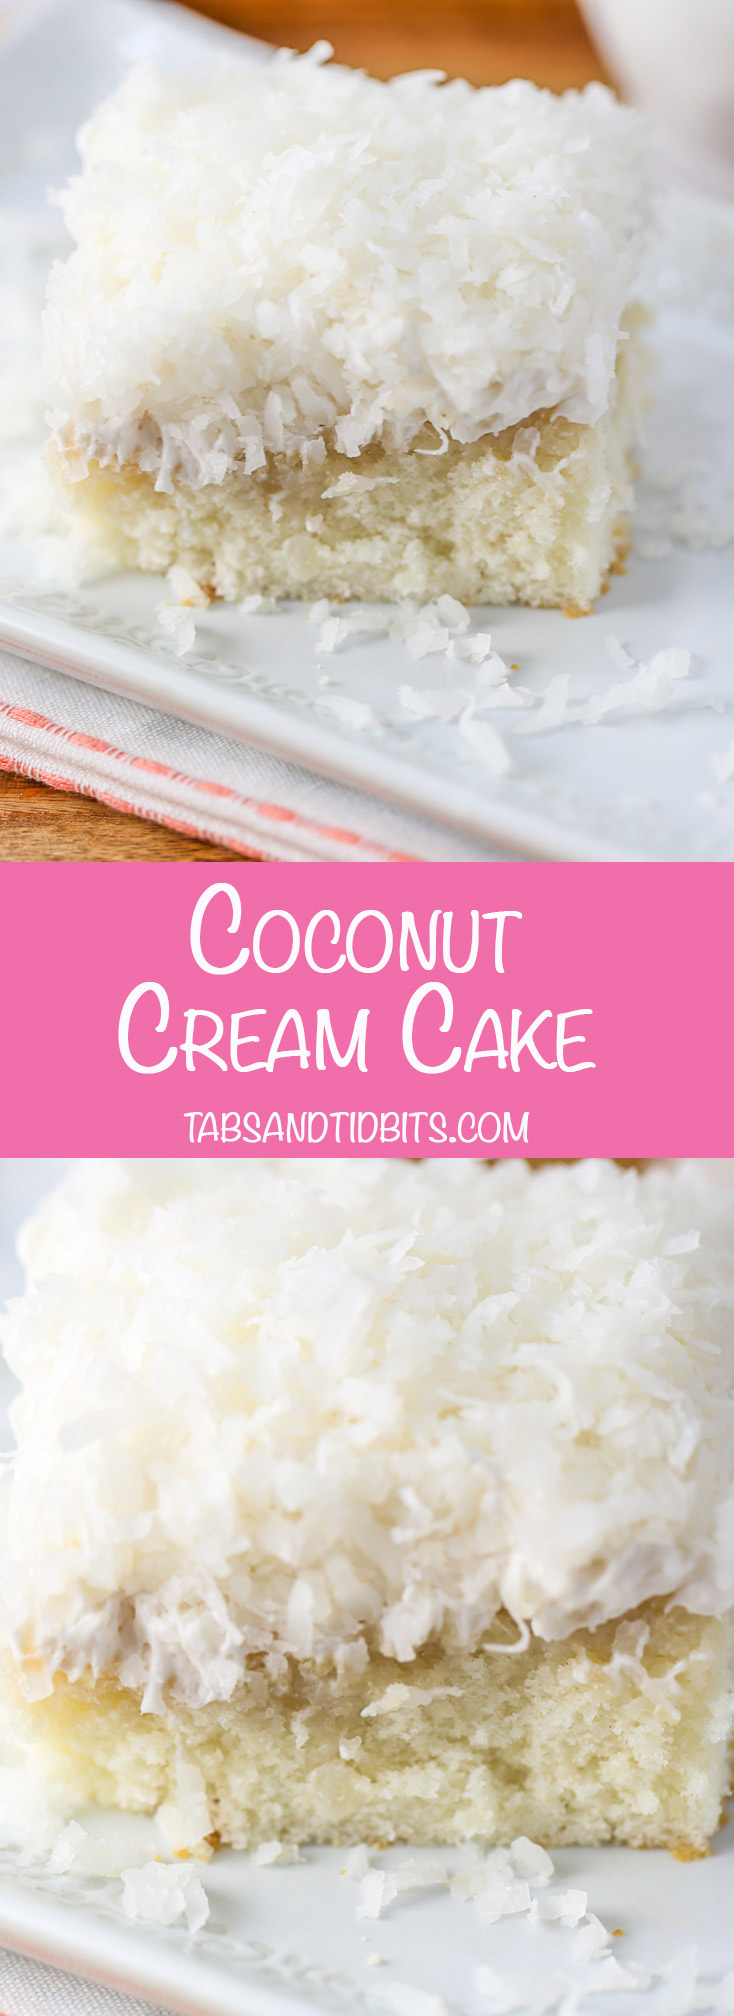 Coconut Cream Cake - Cool and moist coconut cake with just the right amount of sweet!